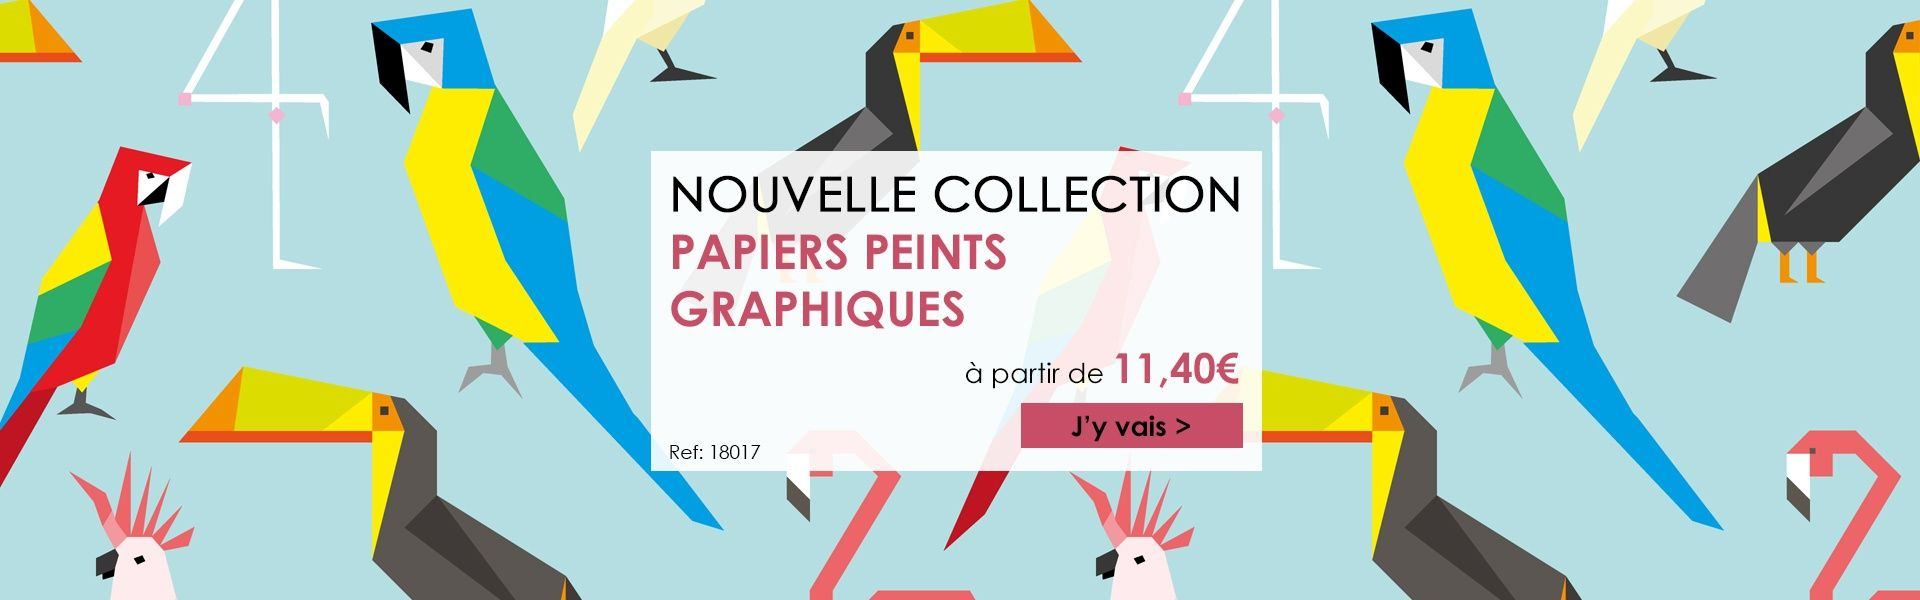 Collection-papier-peint-graphique